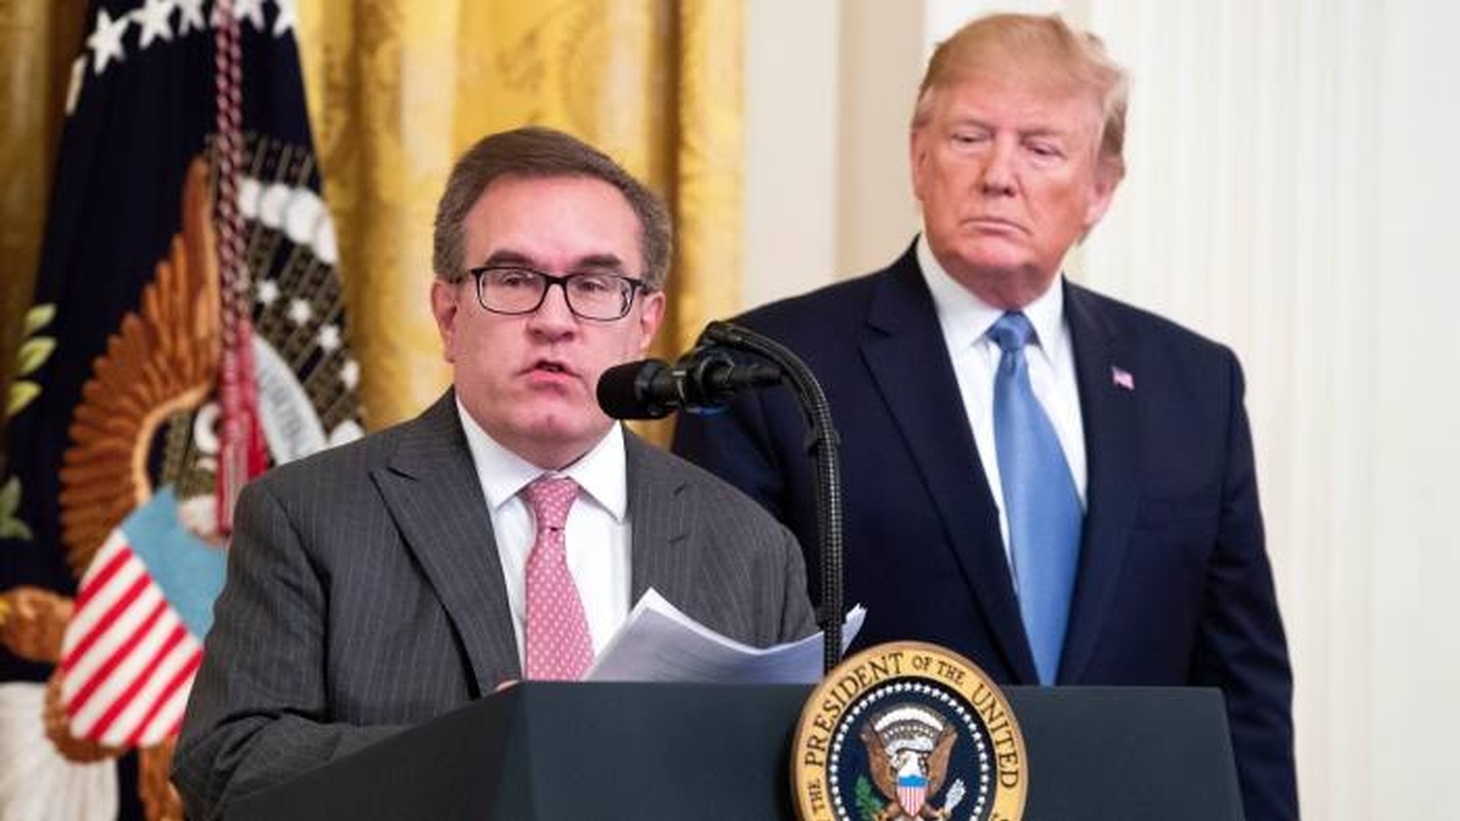 In a speech at the White House on Monday, President Trump and Alex Wheeler, head of the Environmental Protection Agency, talked of the need to focus on 'environmental challenges.'